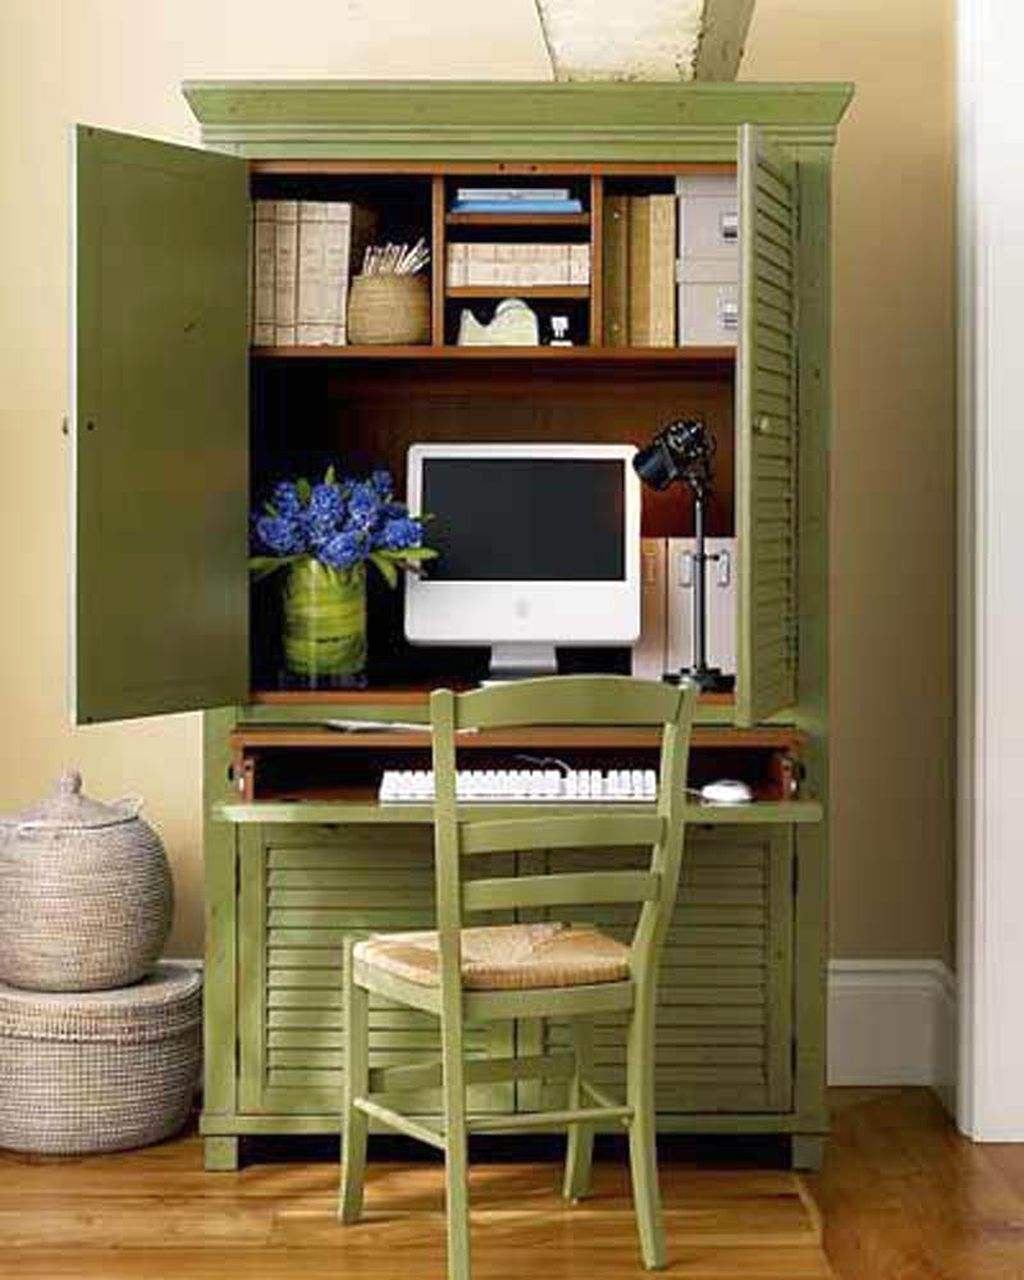 Green cupboard home office design ideas for small spaces for Home office remodel ideas